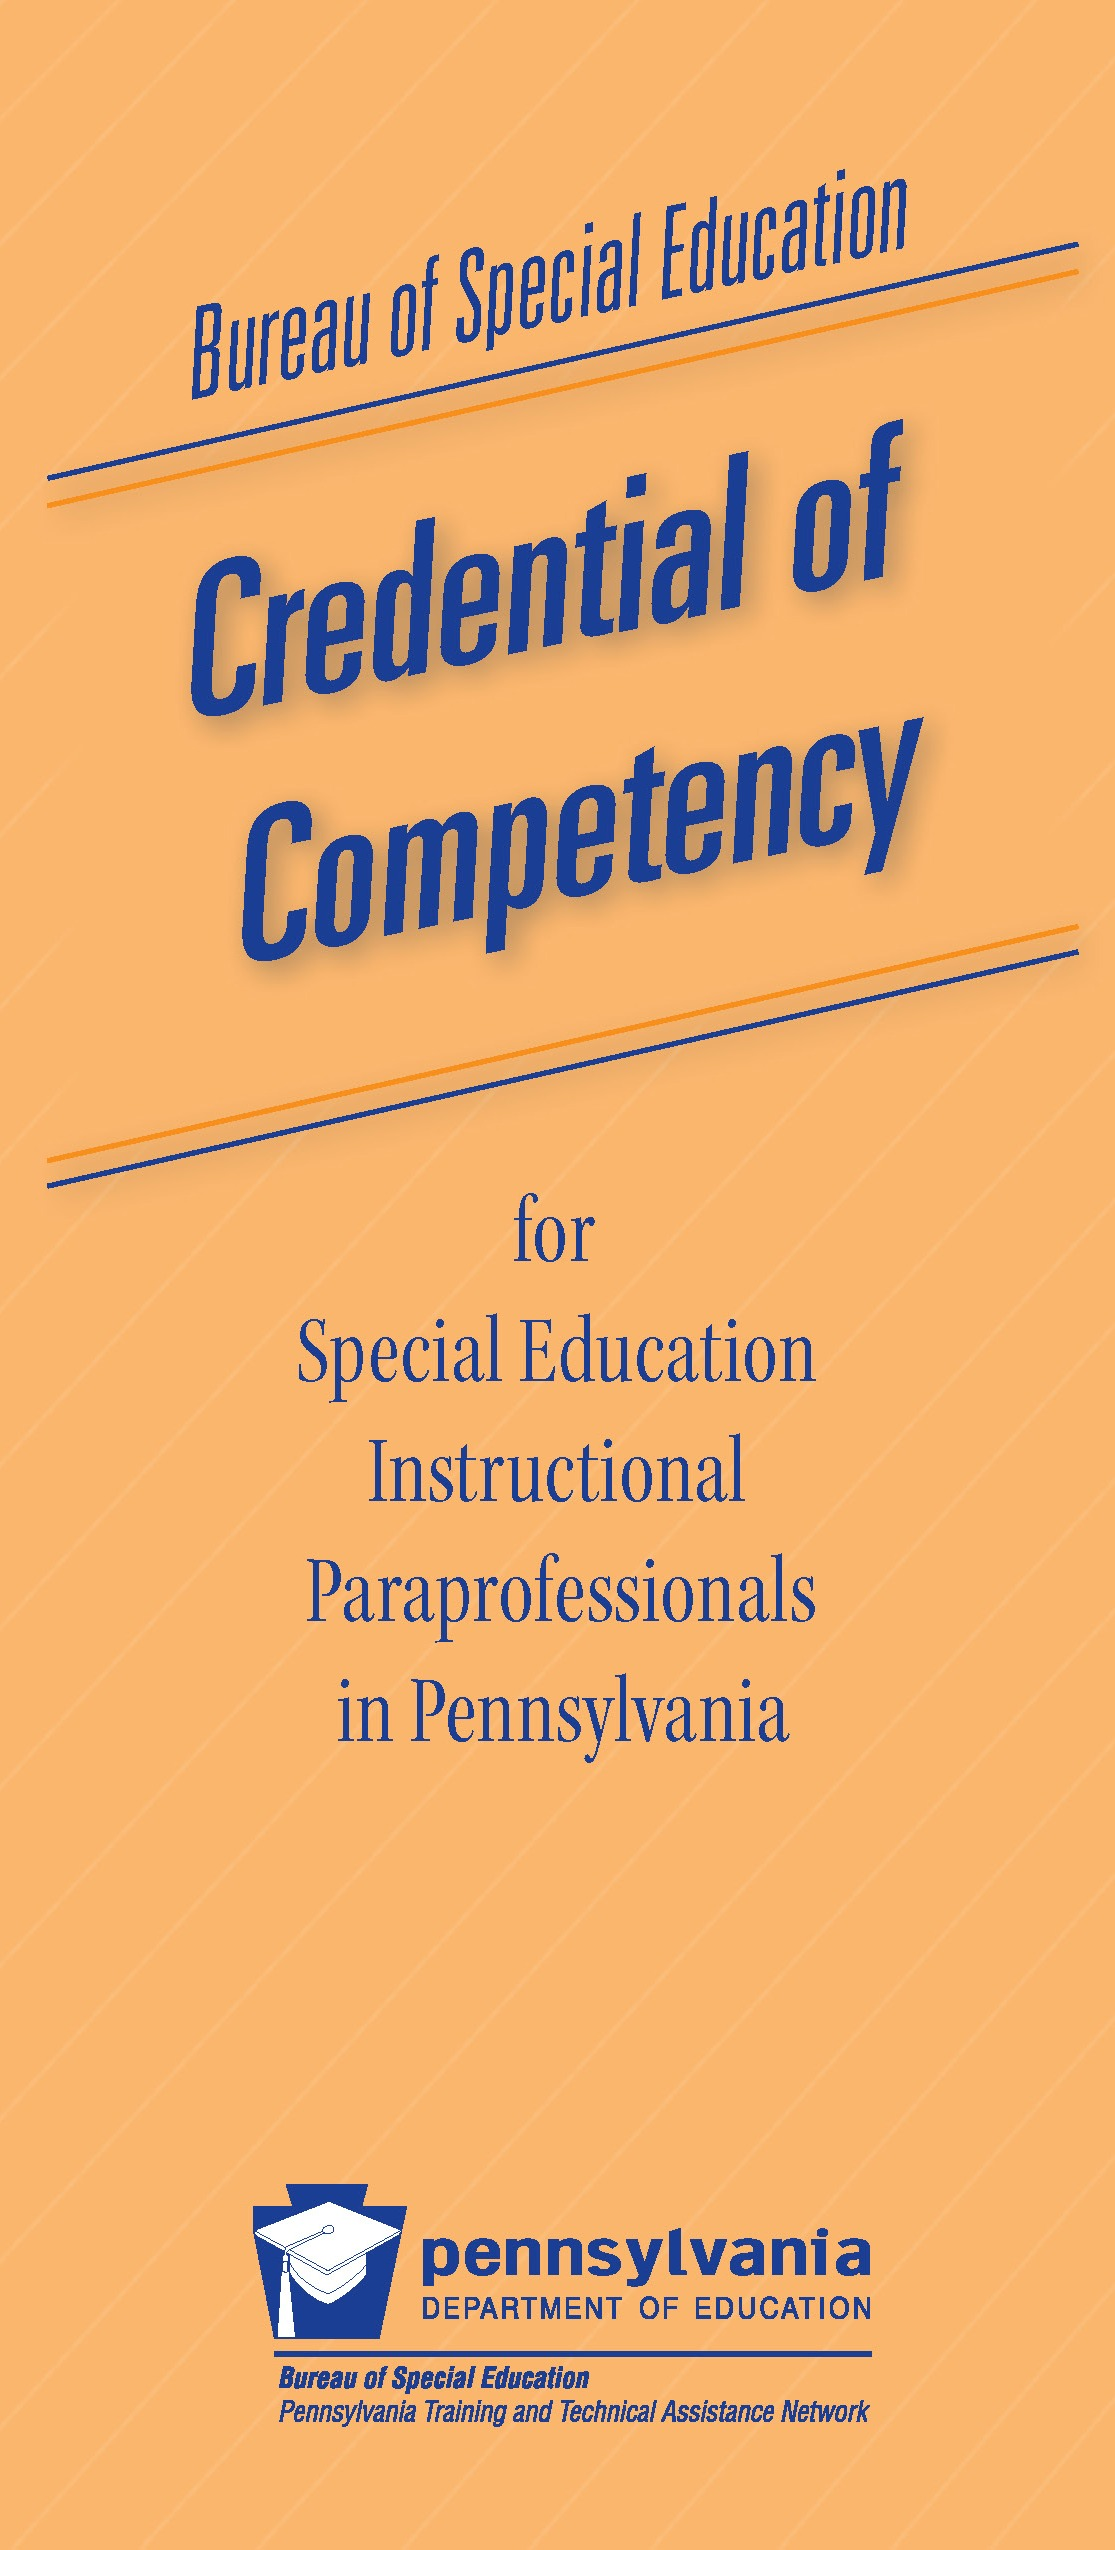 Bureau of Special Education Credential of Competency for Special Education Instructional Paraprofessionals in Pennsylvania